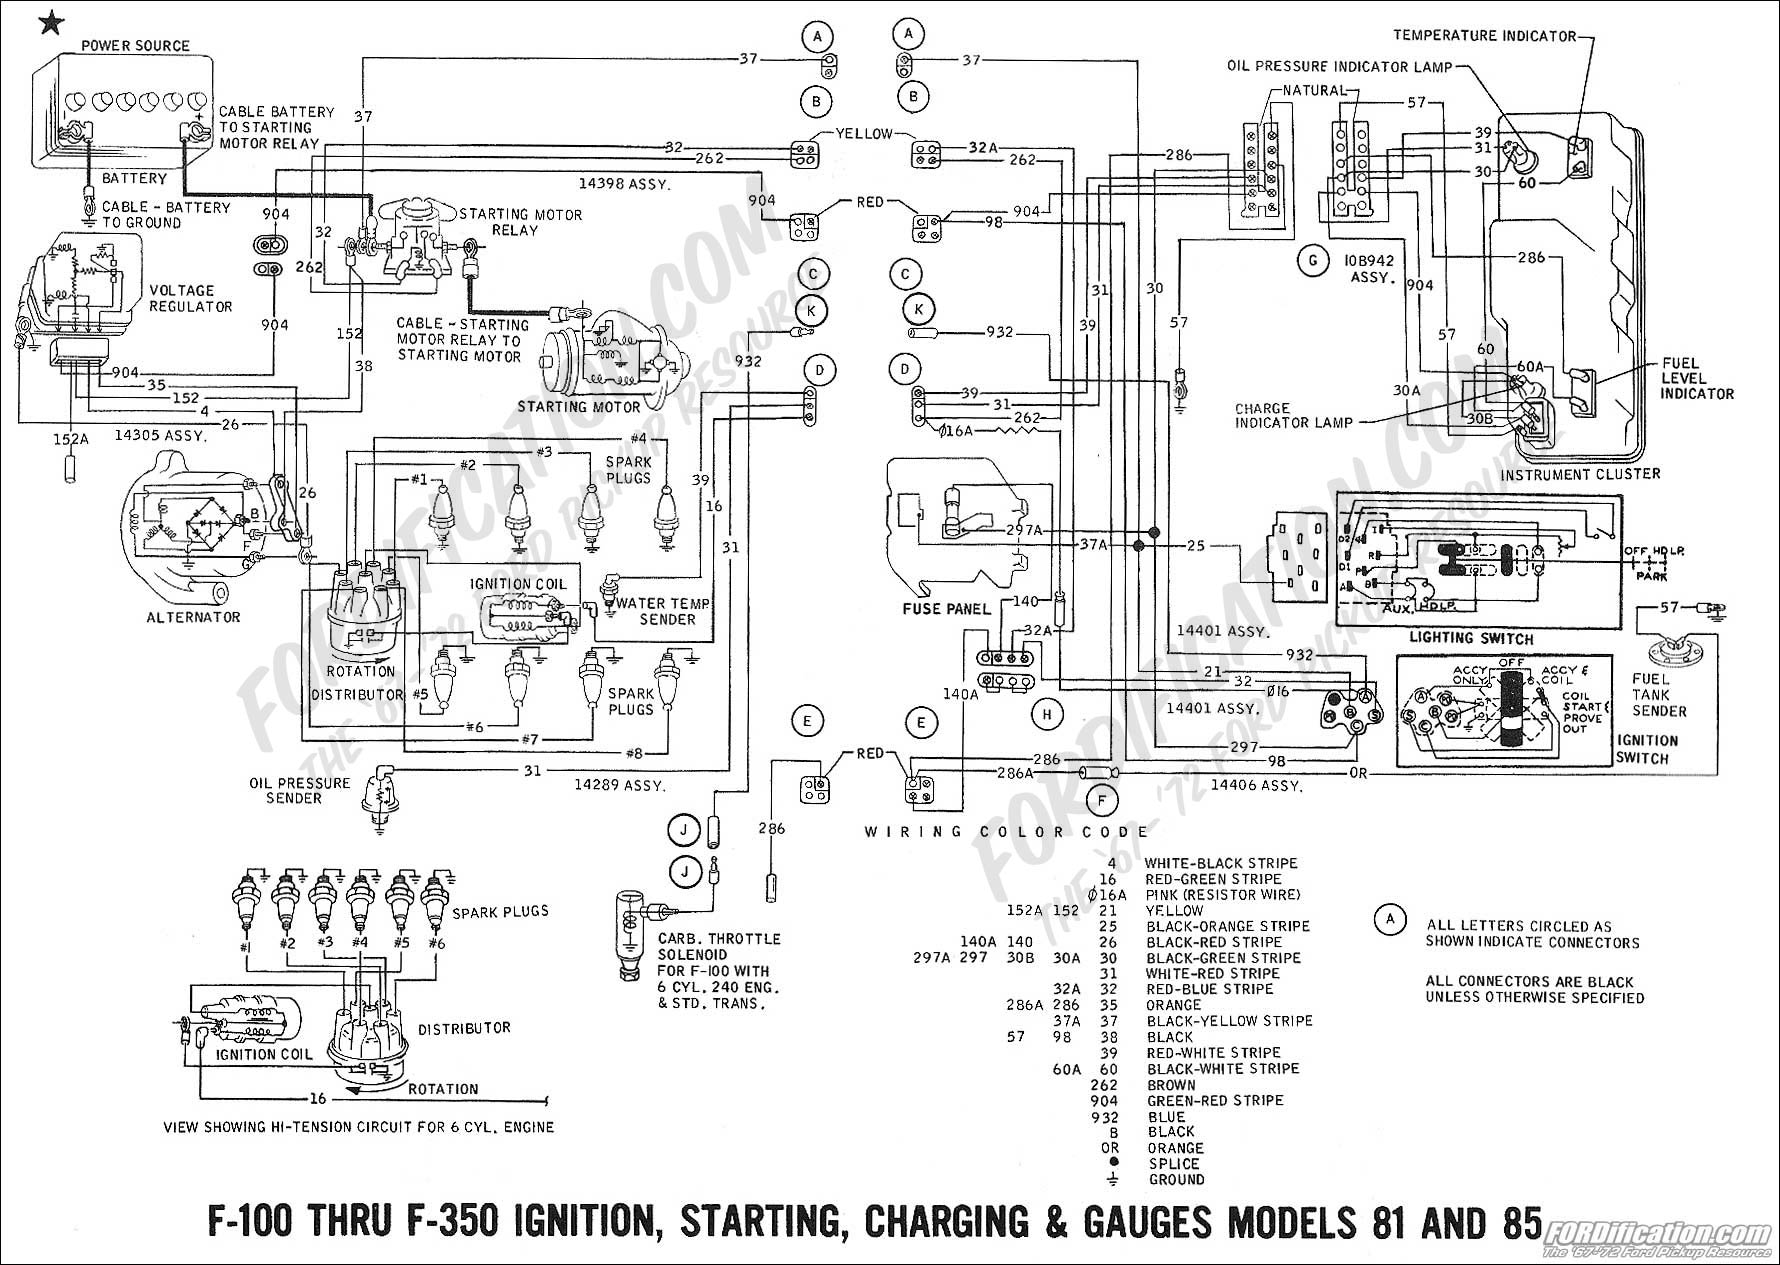 Ford Pickup Wiring Diagrams Clean 1978 Mercruiser 898 Diagram As Well 1931 Truck On 1969 Corvette Power Rh Sellfie Co 1936 1939